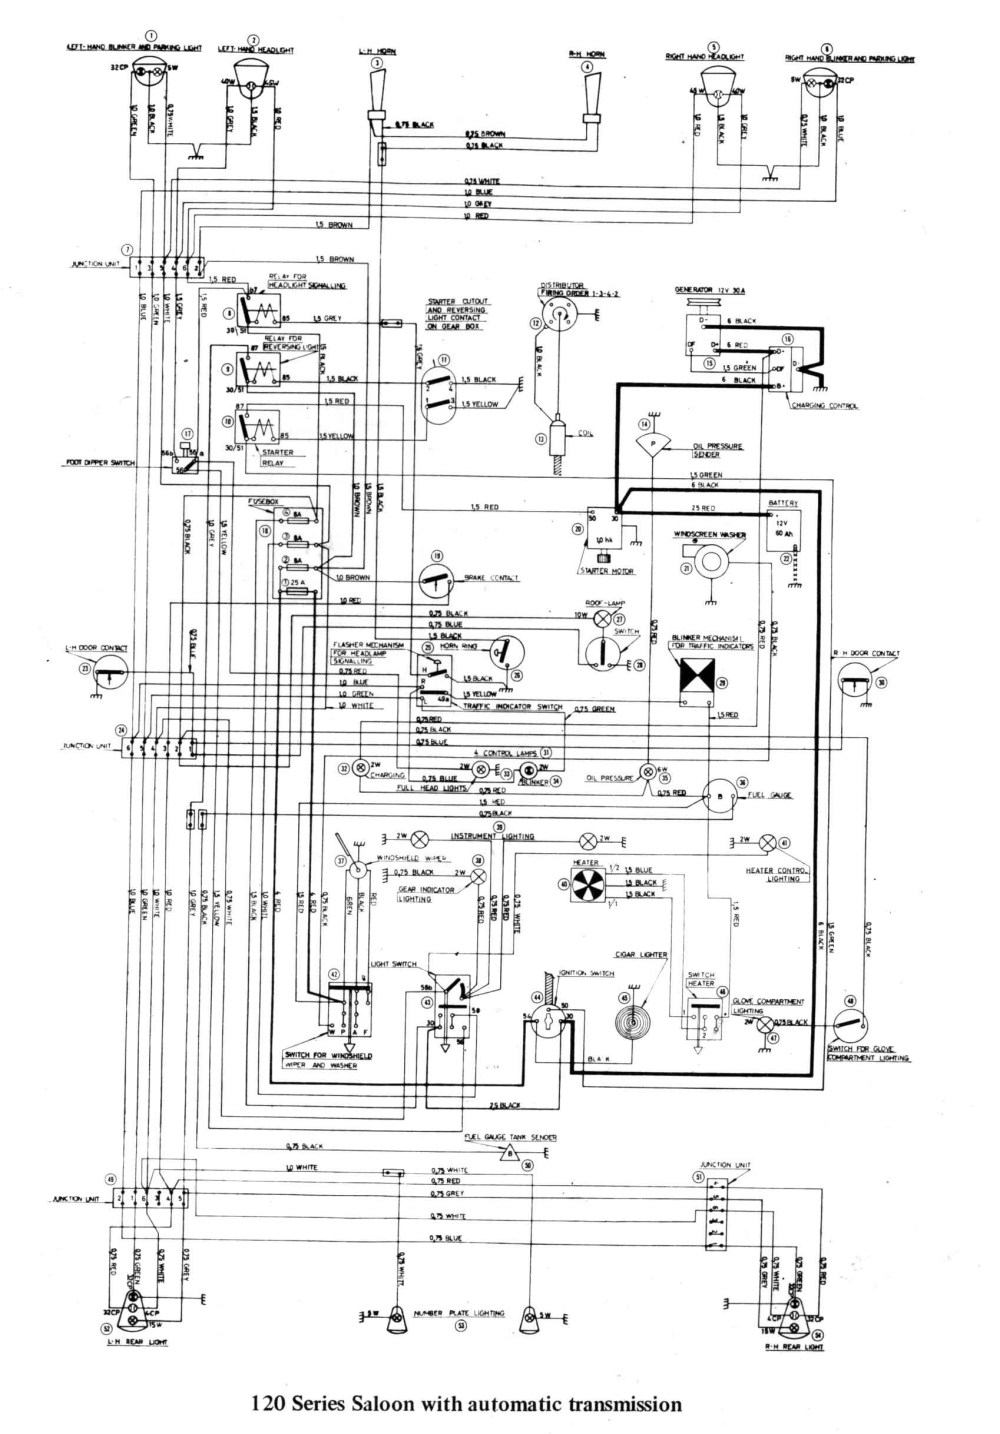 medium resolution of 2001 volvo wiring diagram wiring diagram third level 2007 volvo s60 wiring diagram volvo wiring diagram s60